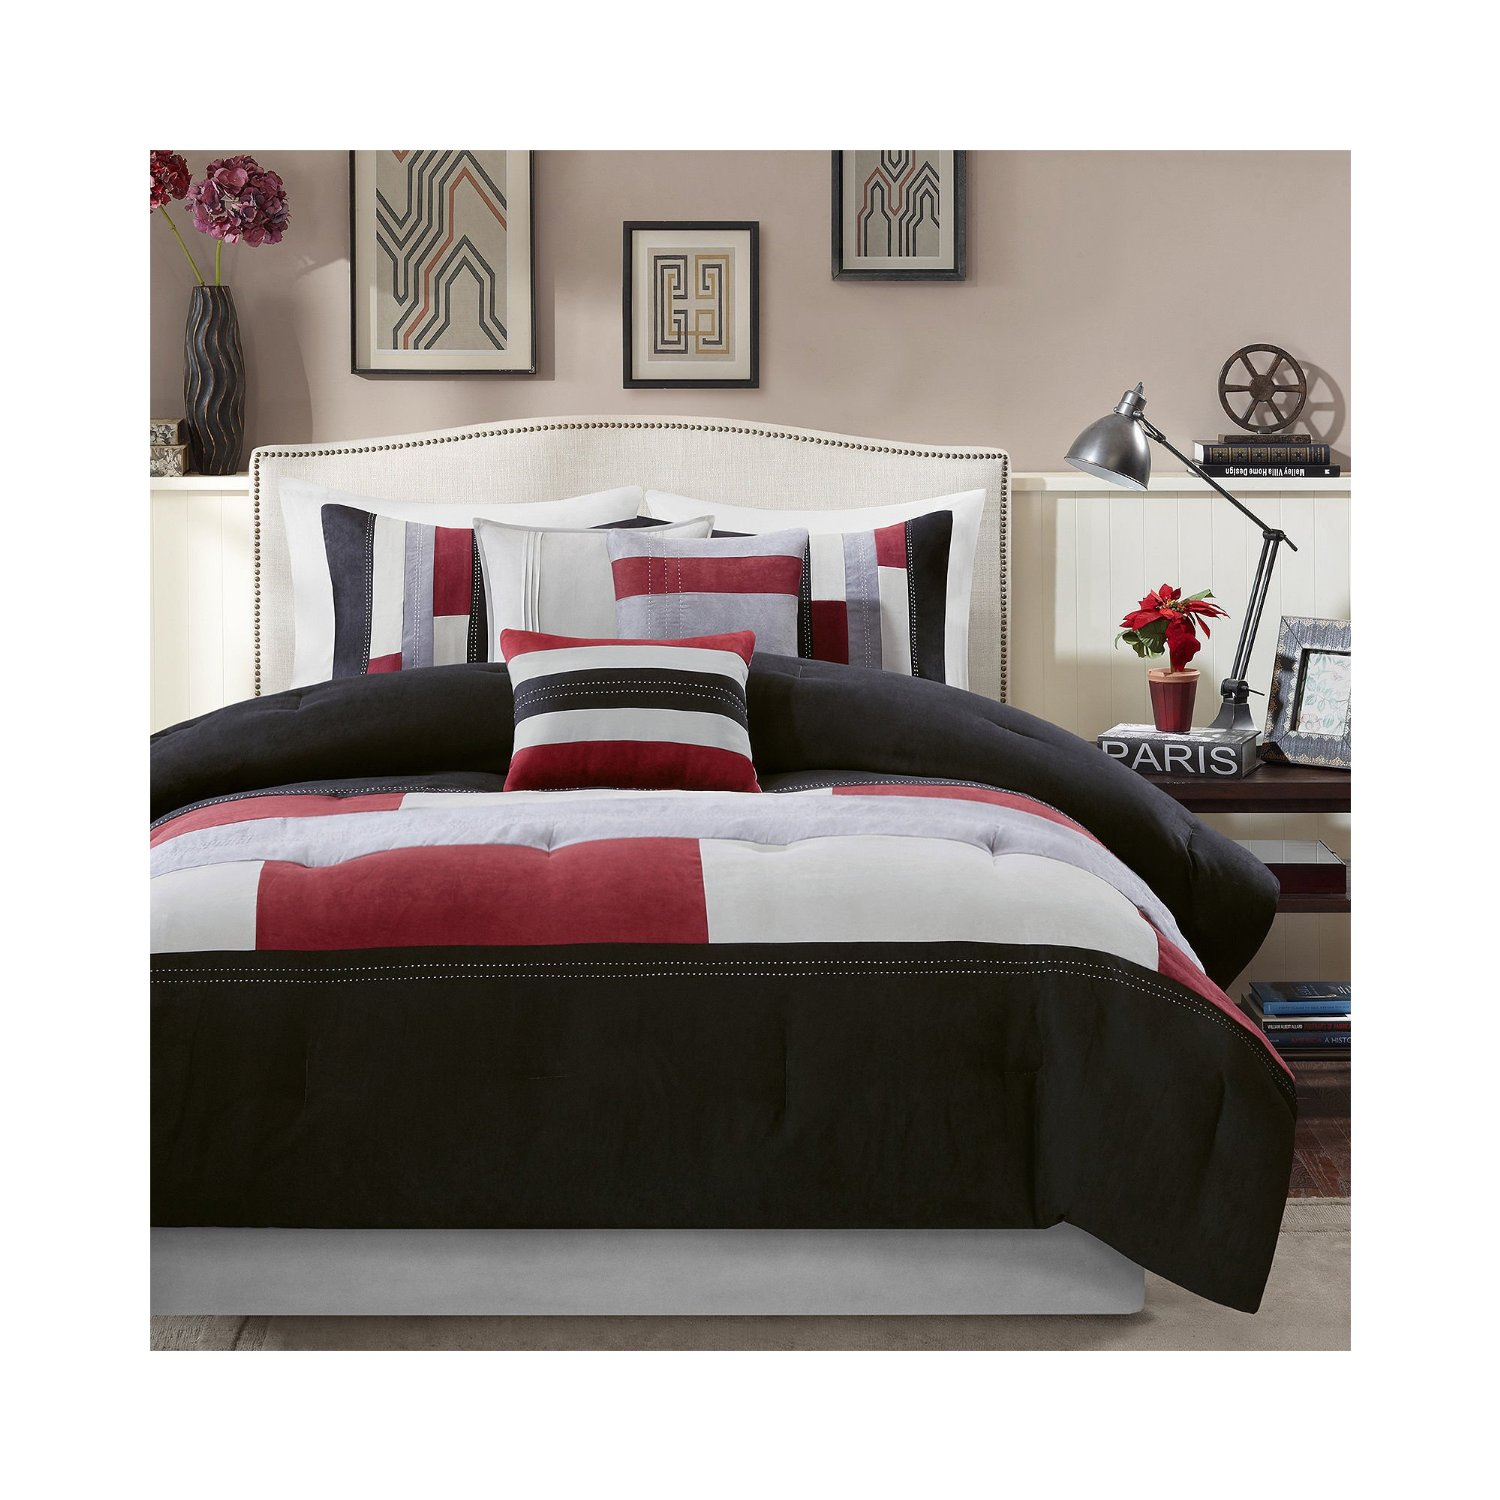 Red White and Black forters & Bedding Sets Bright Sopshiticated